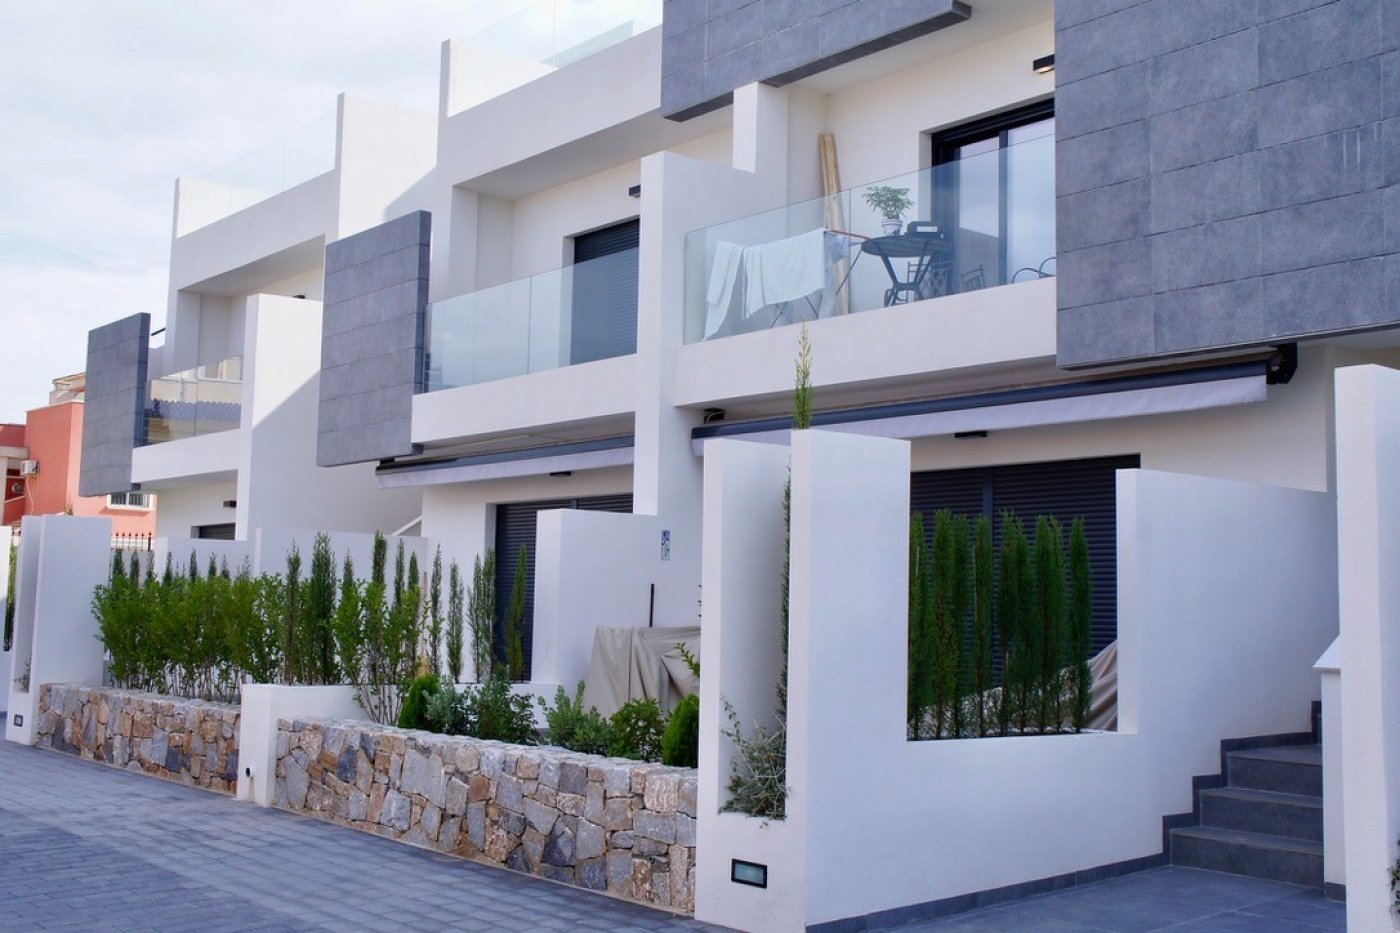 Gallery Image 2 of Lovely new build 2 bed penthouse with 2 bath and 58 m2 roof terrasse